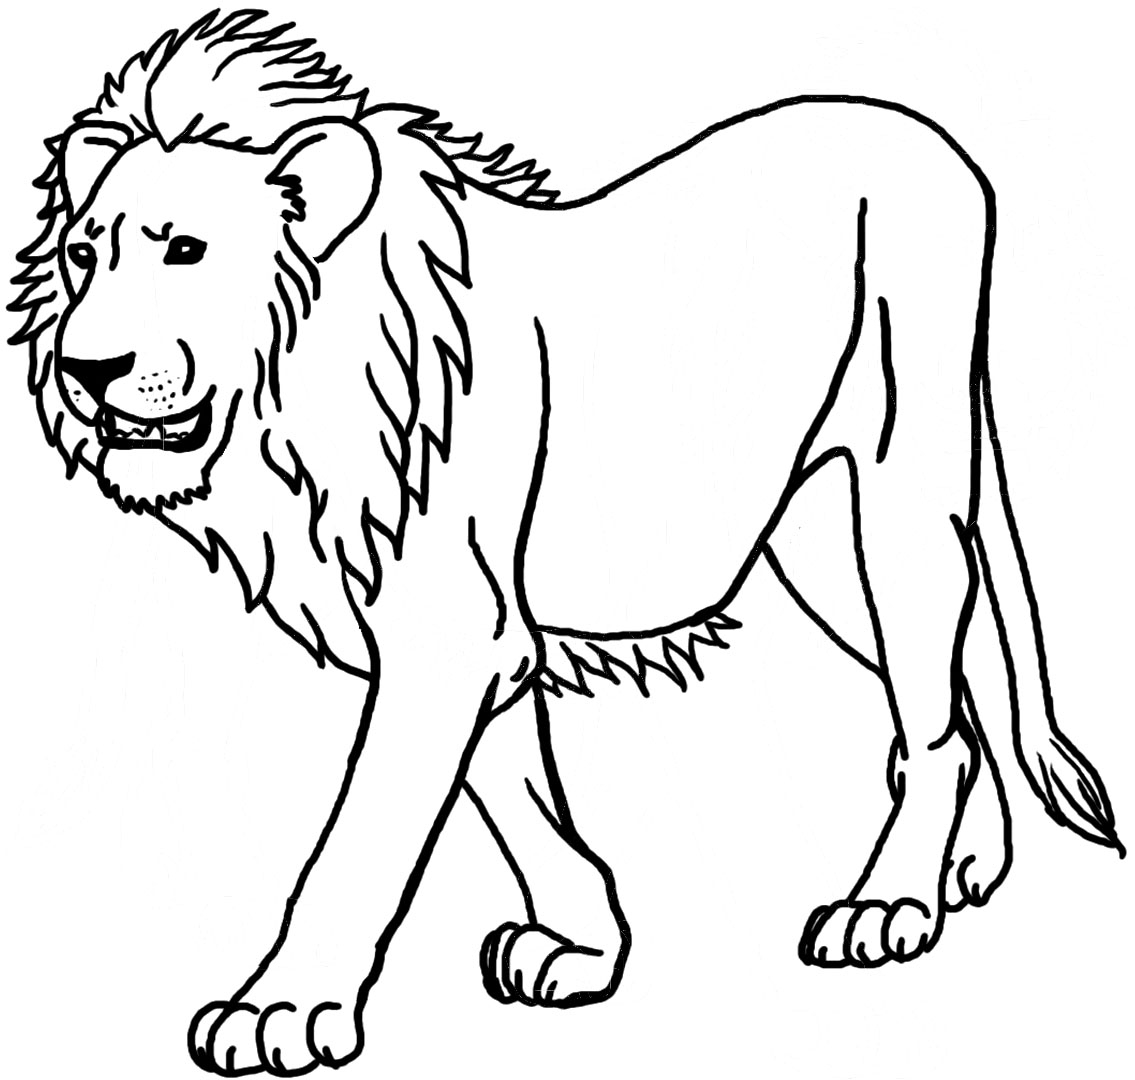 1135x1080 Liberal Lion Coloring Pages Genuine Picture